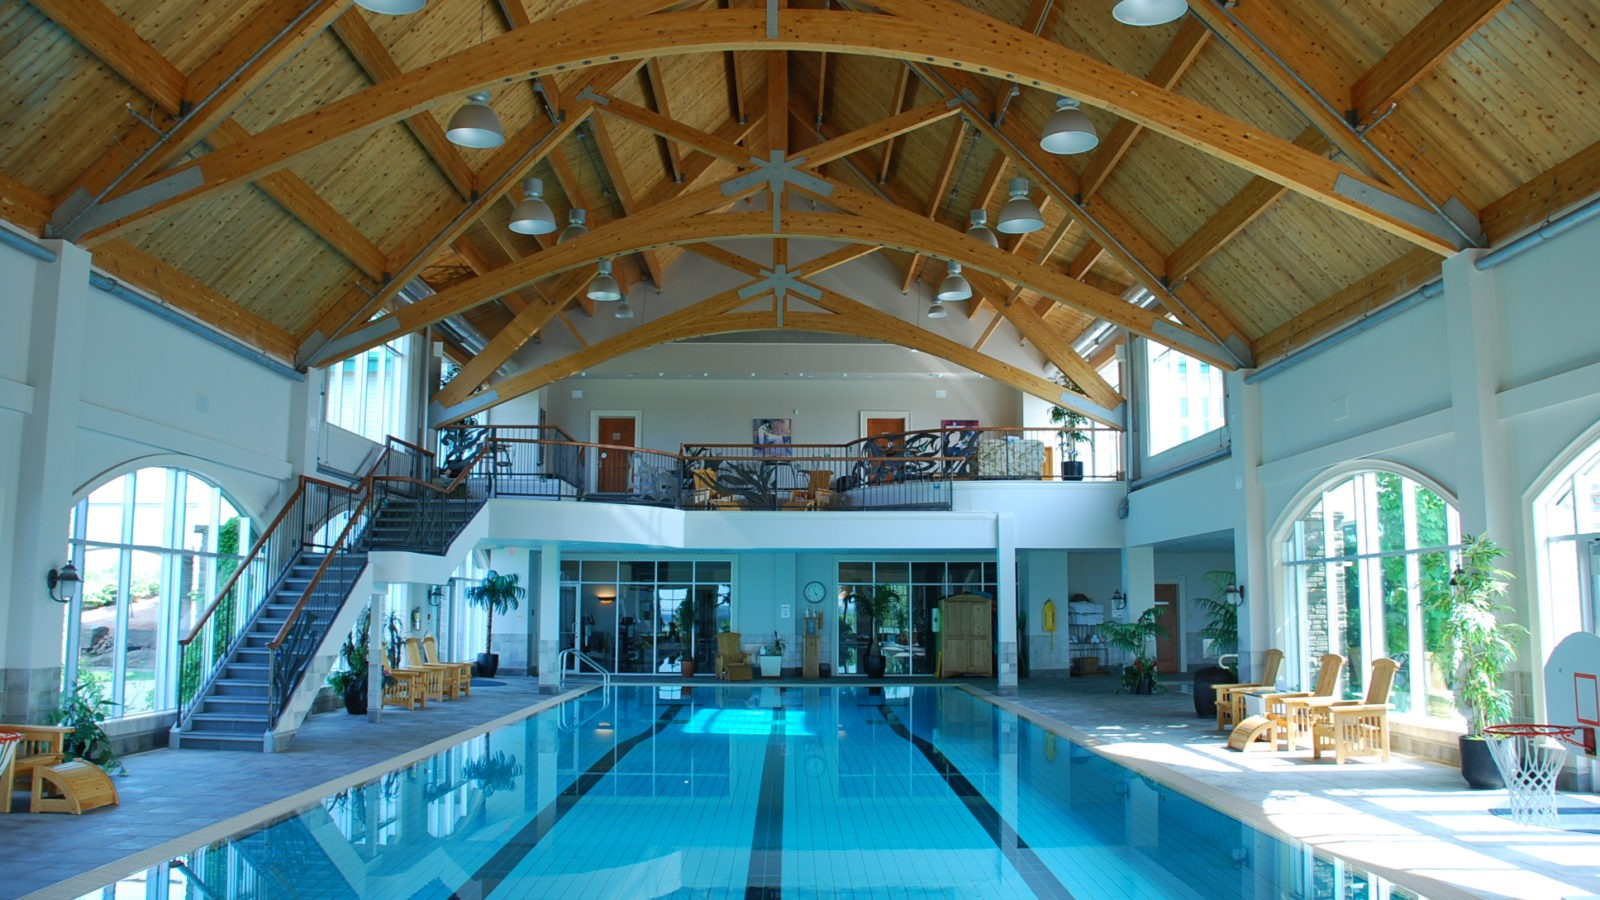 fox-harbr-resort-pool-spa-end_38342588204_o